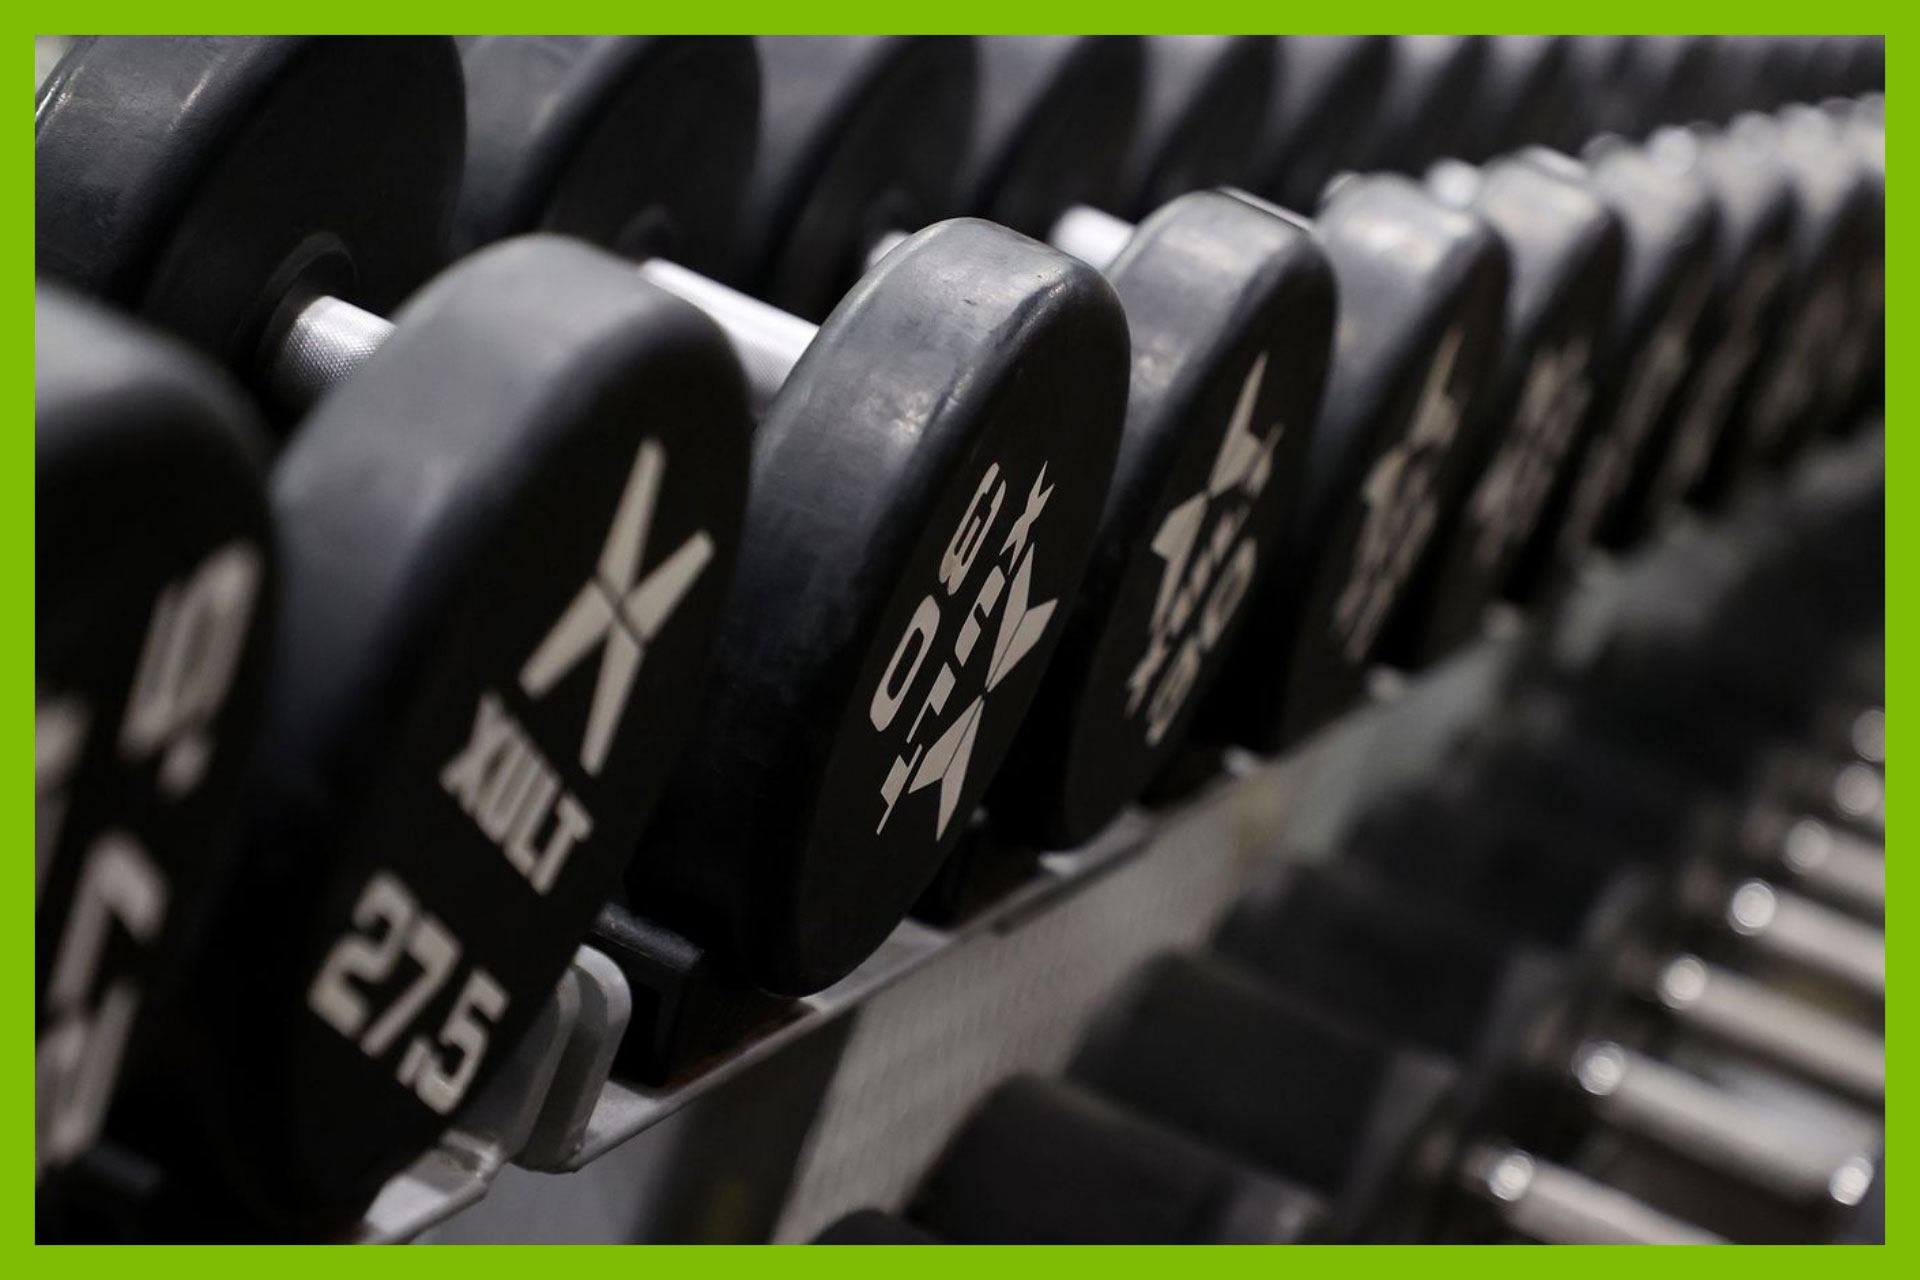 Our trainer, Will Goodwin, a Denver Fitness specialist, explains why progressive overload is the key to gaining strength, muscle, and losing weight.